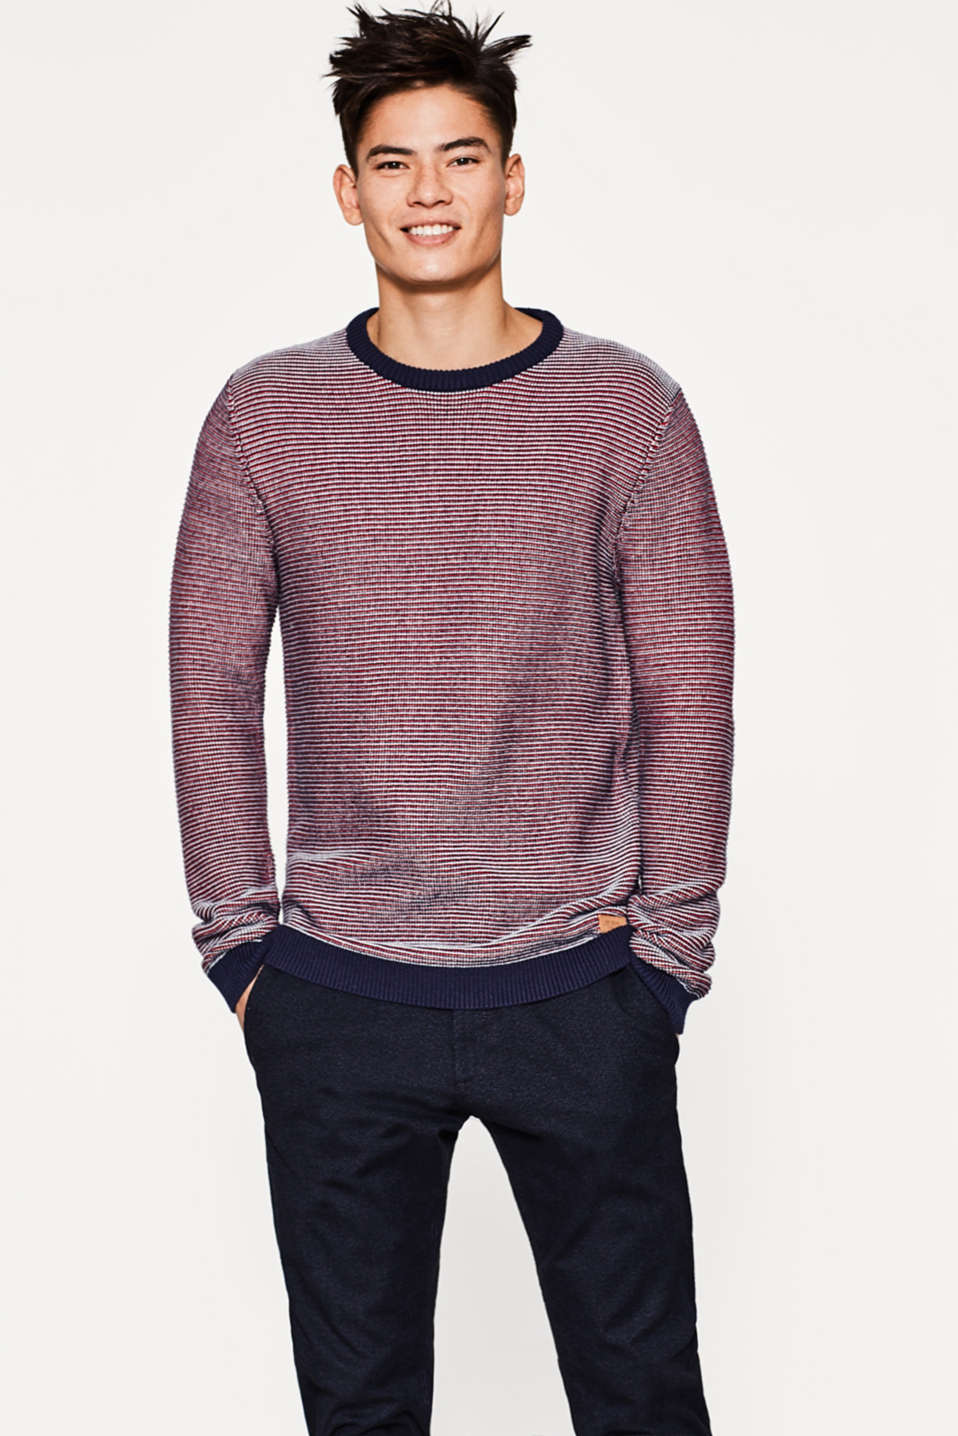 edc - Flerfarvet sweater i strik